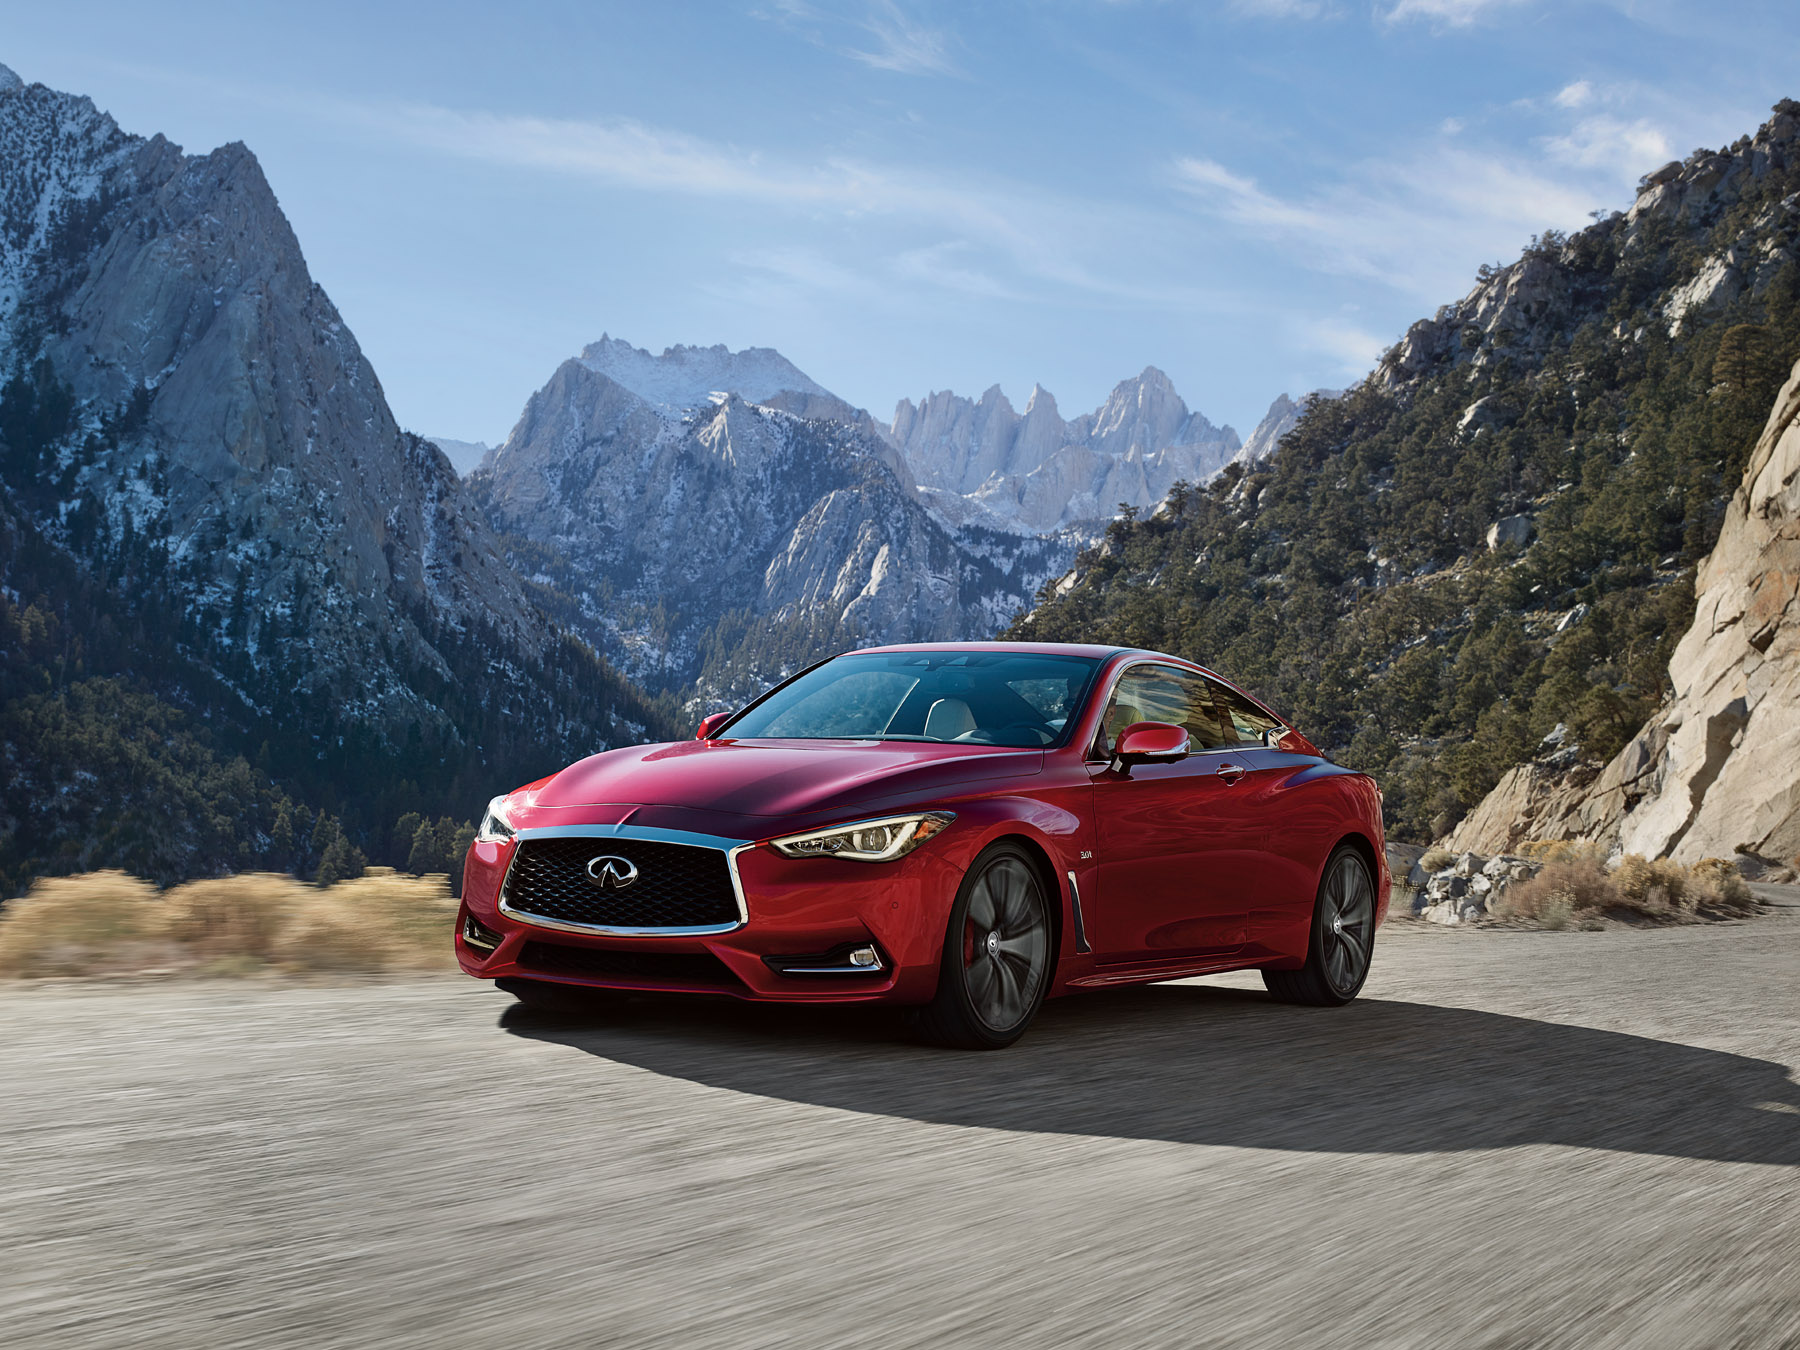 Red Infiniti Q60 driving on the mountain side